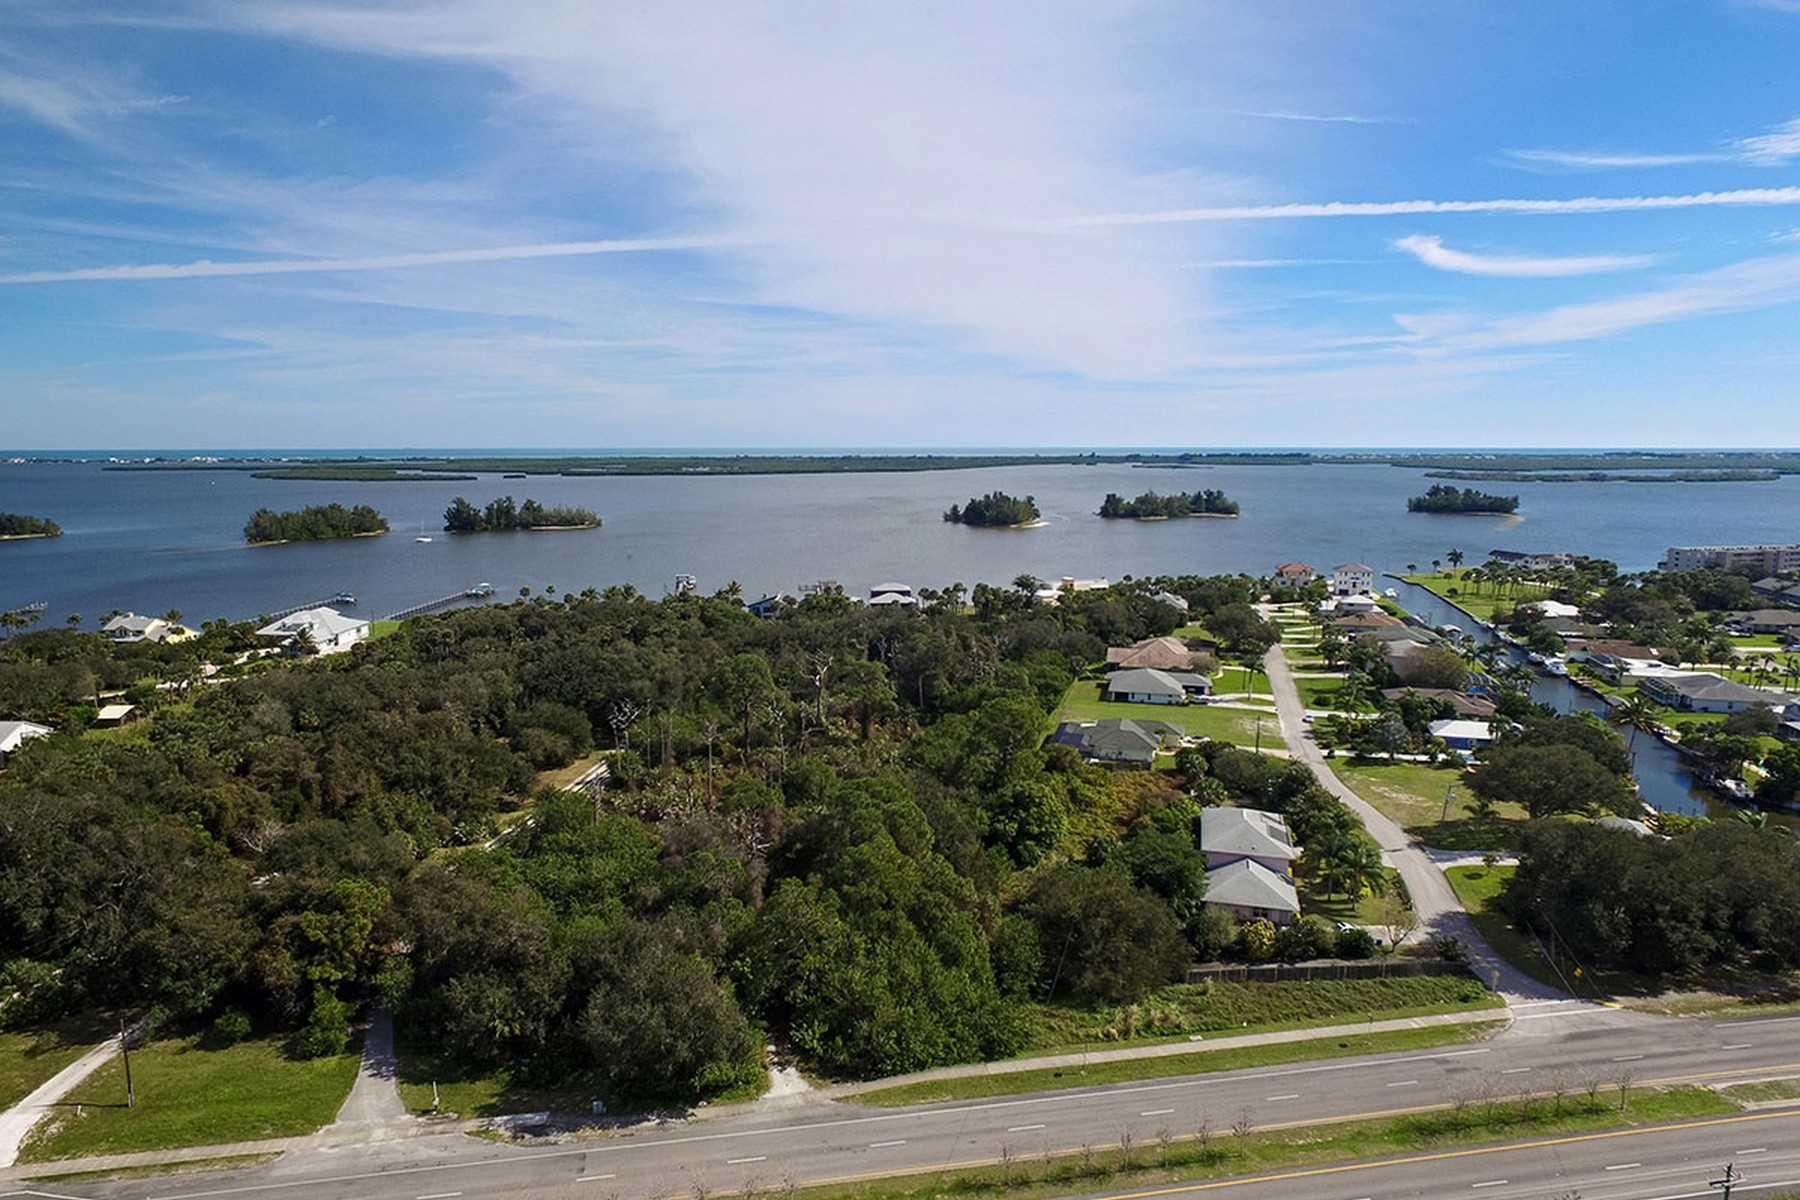 Land for Sale at Triplex Development Opportunity in Sebastian 11100 US Highway 1 Sebastian, Florida, 32958 United States